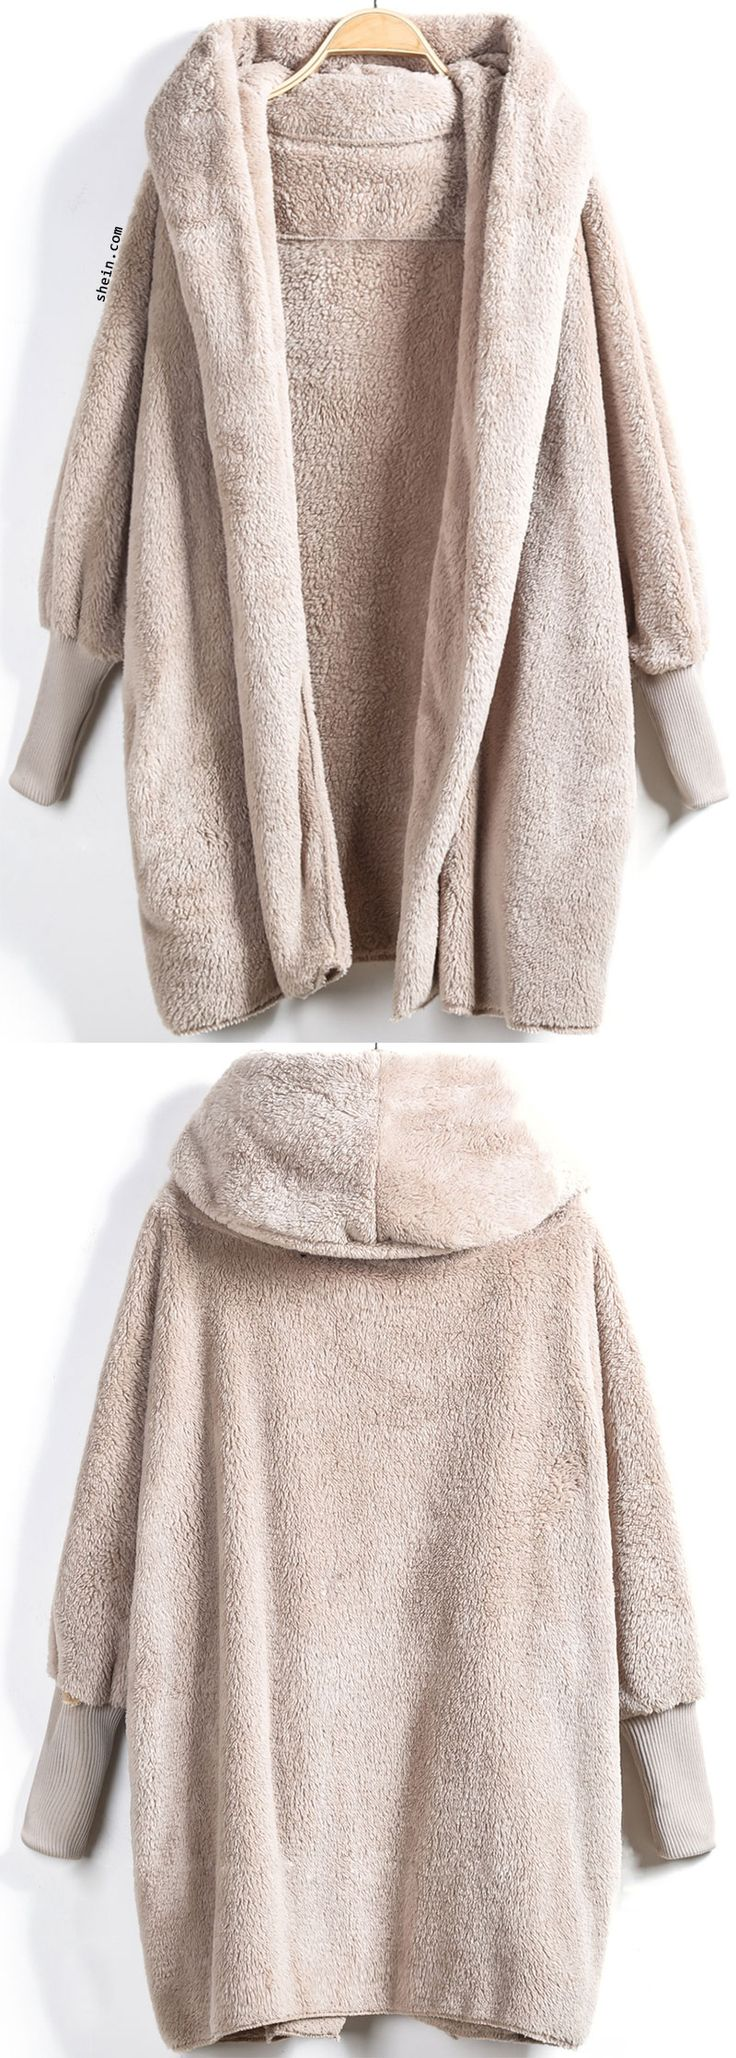 Feel warm and wear like wearing a teddy bear in this Apricot Hooded Long Sleeve Loose Cardigan.